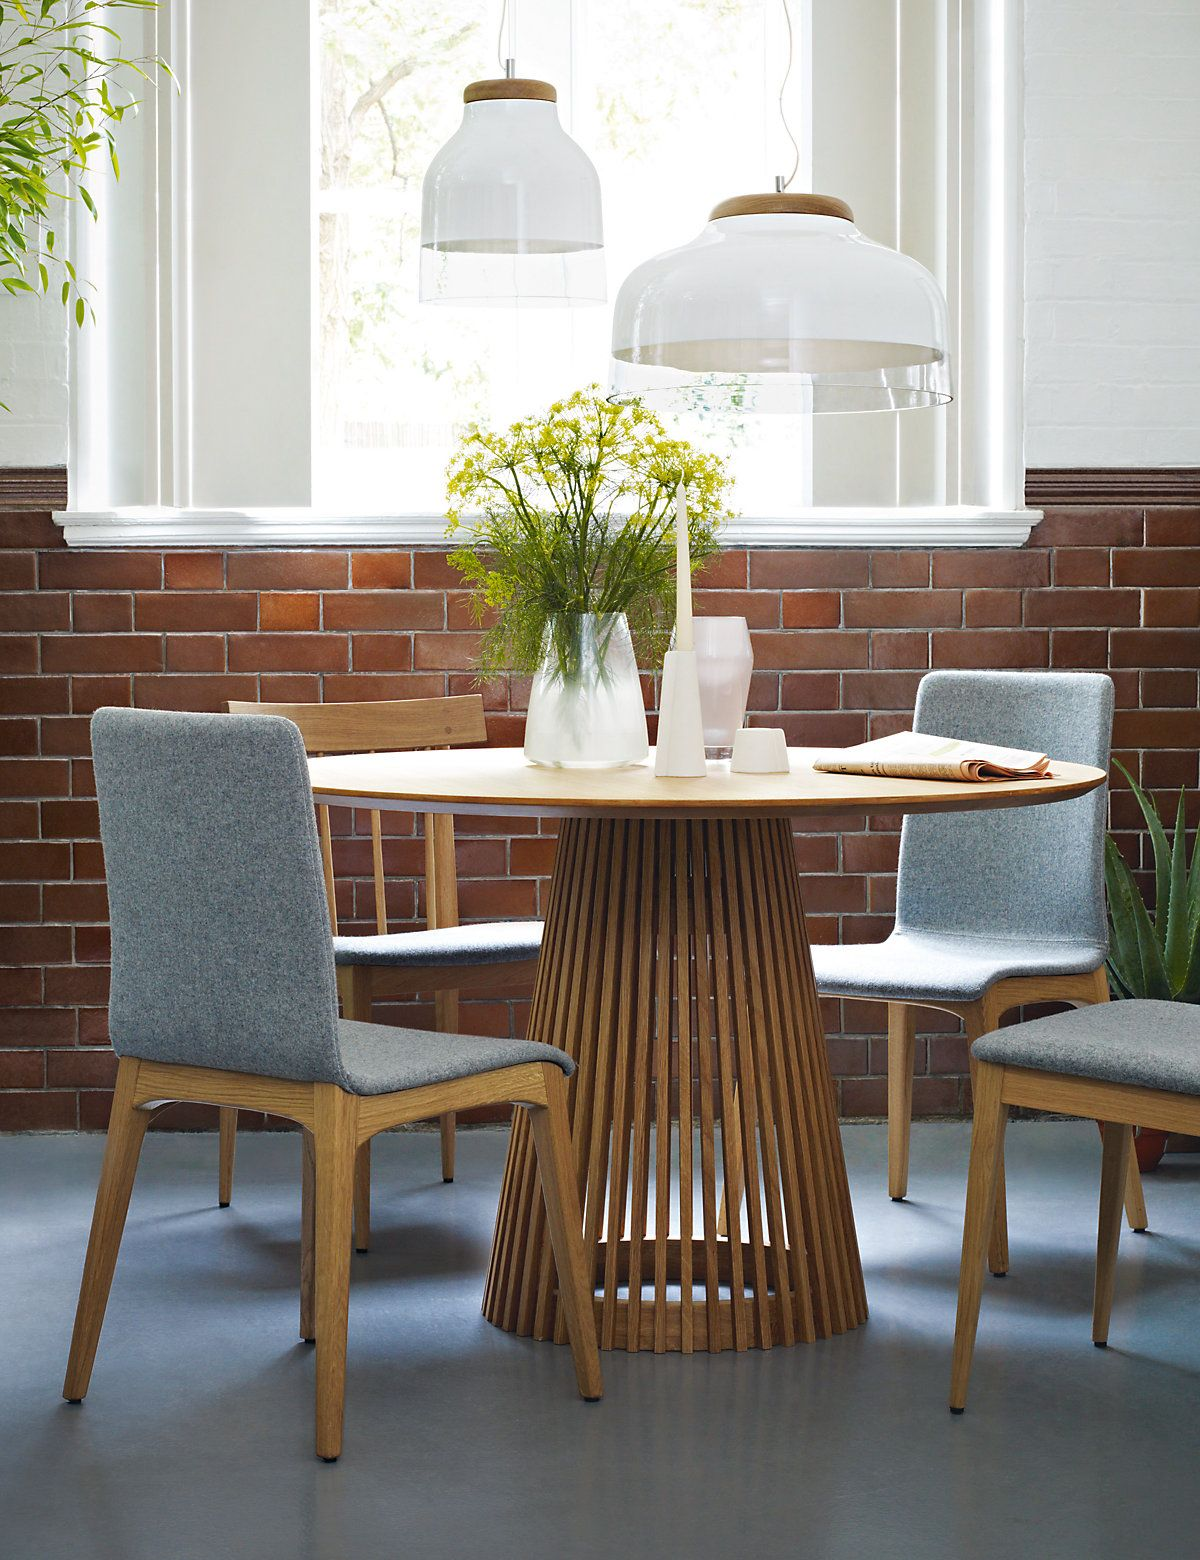 Conran Aiken Dining Table | Dining table, Table, Dining